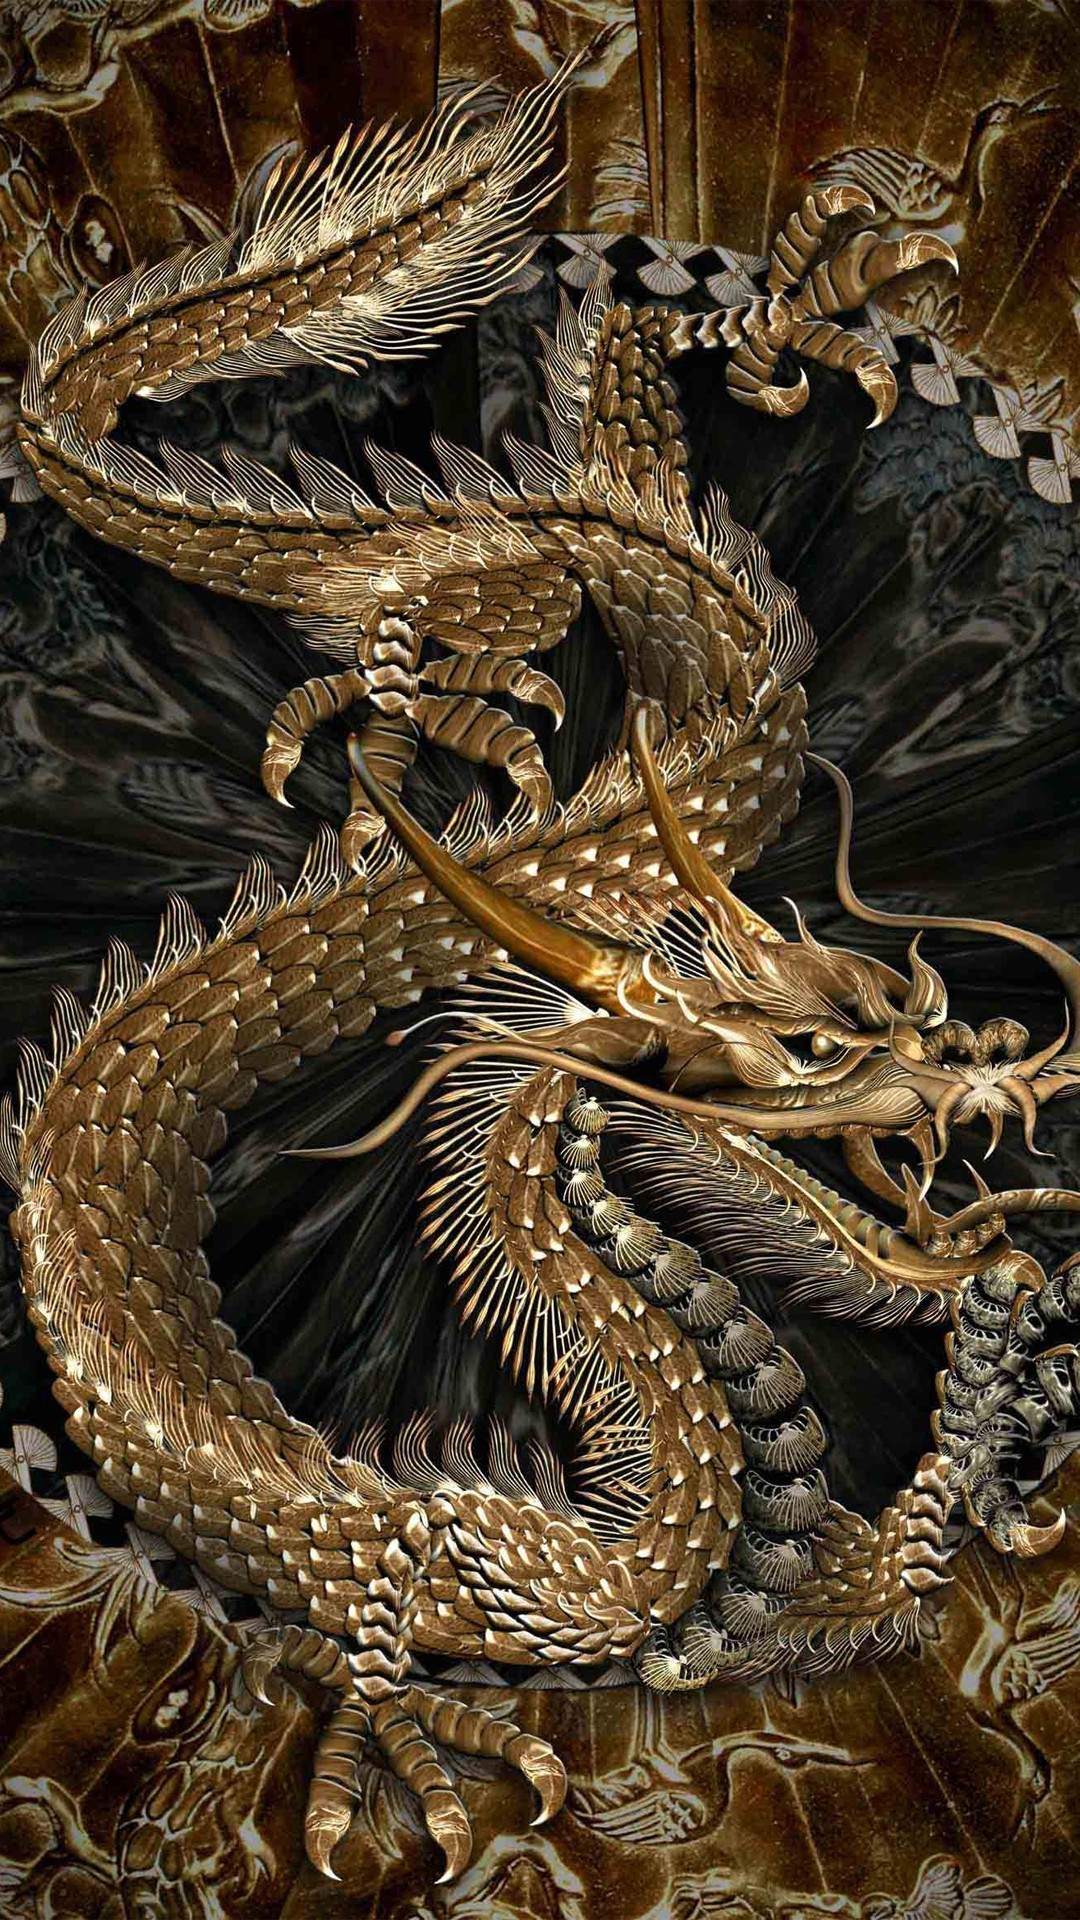 Chinese dragon wallpaper 69 images - Dragon backgrounds 1920x1080 ...